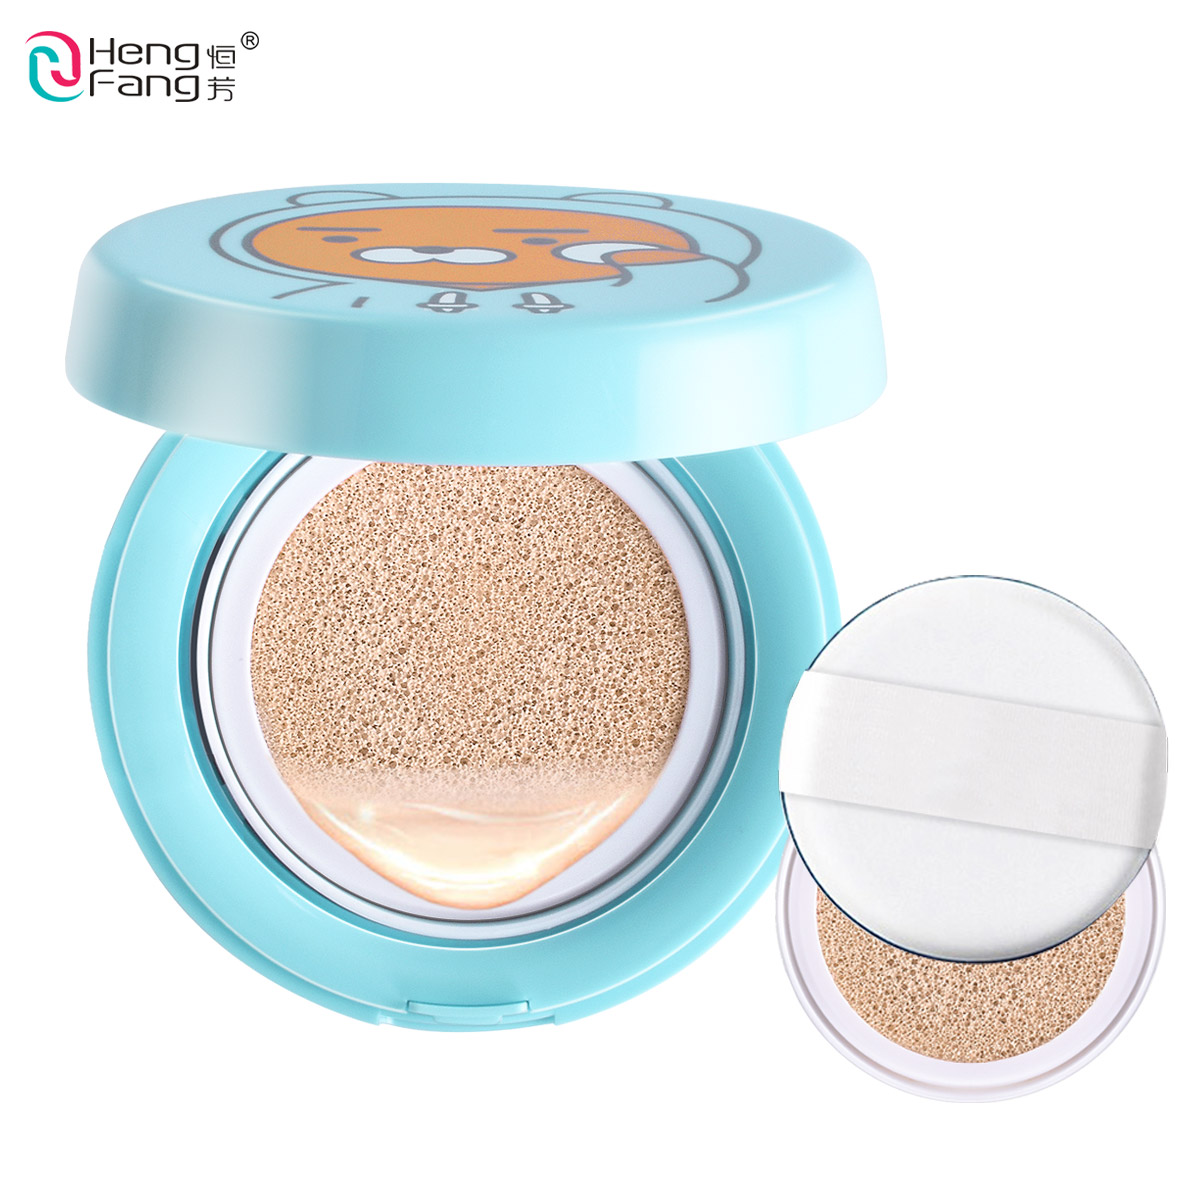 Air Cushion BB Cream Isolation Bb Nude Concealer , Oil Control Moisturizing 15gX2 Makeup Brand HengFang #H8470